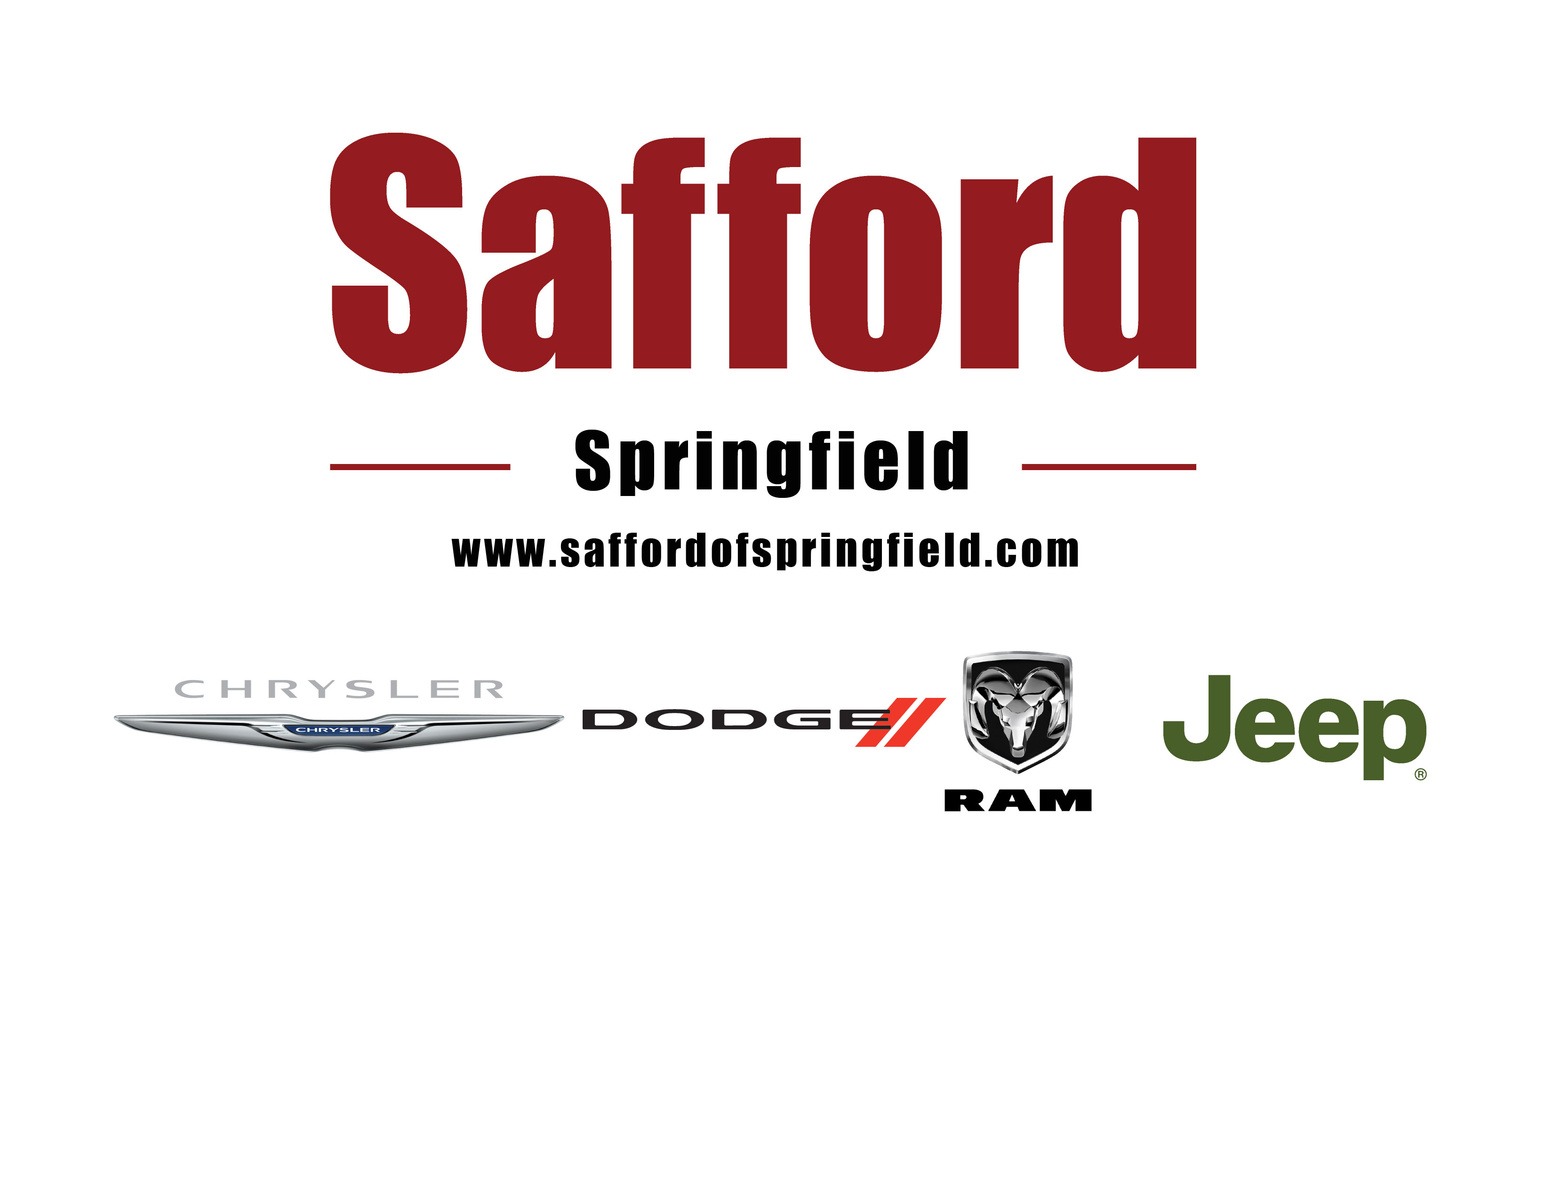 Safford Chrysler Jeep Dodge Ram Of Springfield   Springfield, VA: Read  Consumer Reviews, Browse Used And New Cars For Sale